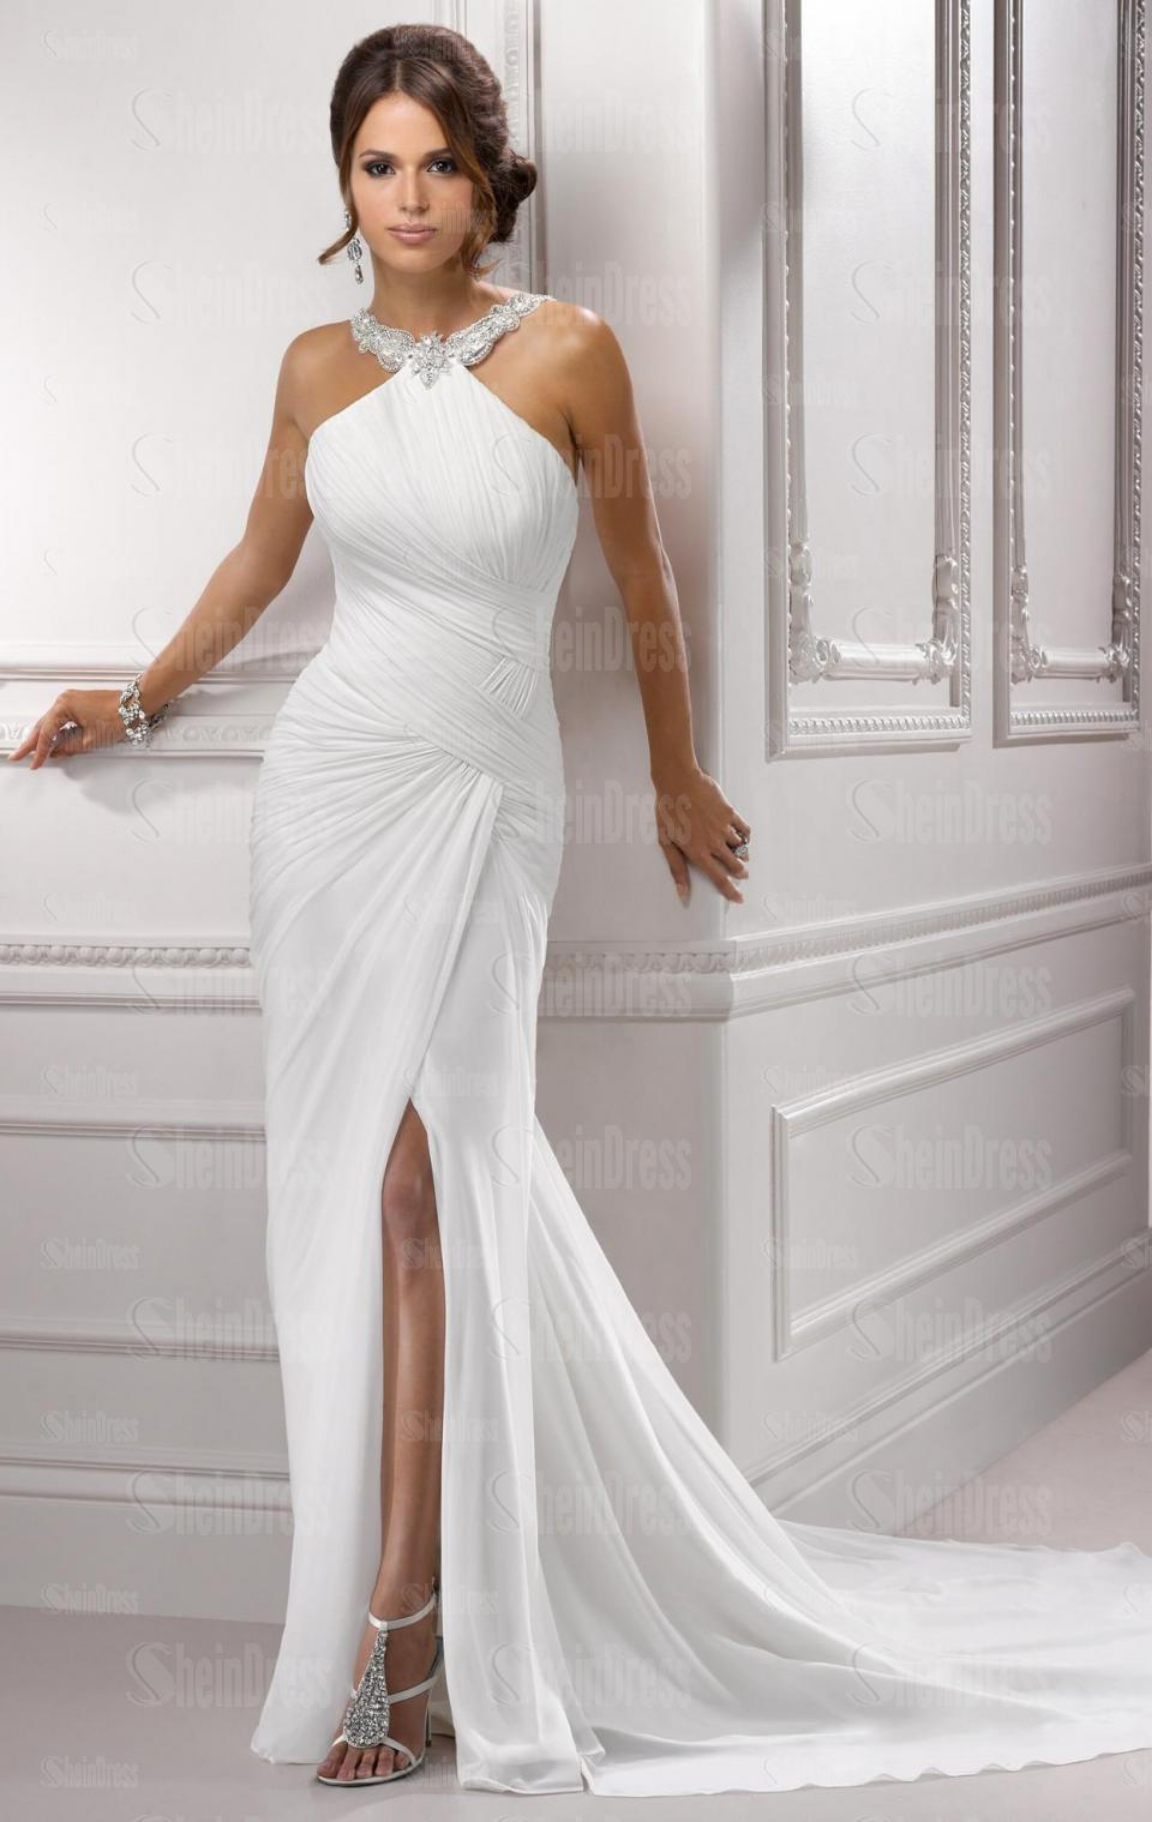 14 Cheap Wedding Dresses Under 100  Getfashionideasm. Blue Wedding Dress Blog. Tulle Wedding Dress Sash. Wedding Dresses 2012 Bridesmaid Dresses 2012 Evening. Shades Of Blue Wedding Dresses. Wedding Guest Dresses Edmonton. Empire Wedding Dress With Pockets. Golden Wedding Bridesmaid Dresses. Empire Wedding Dresses Online